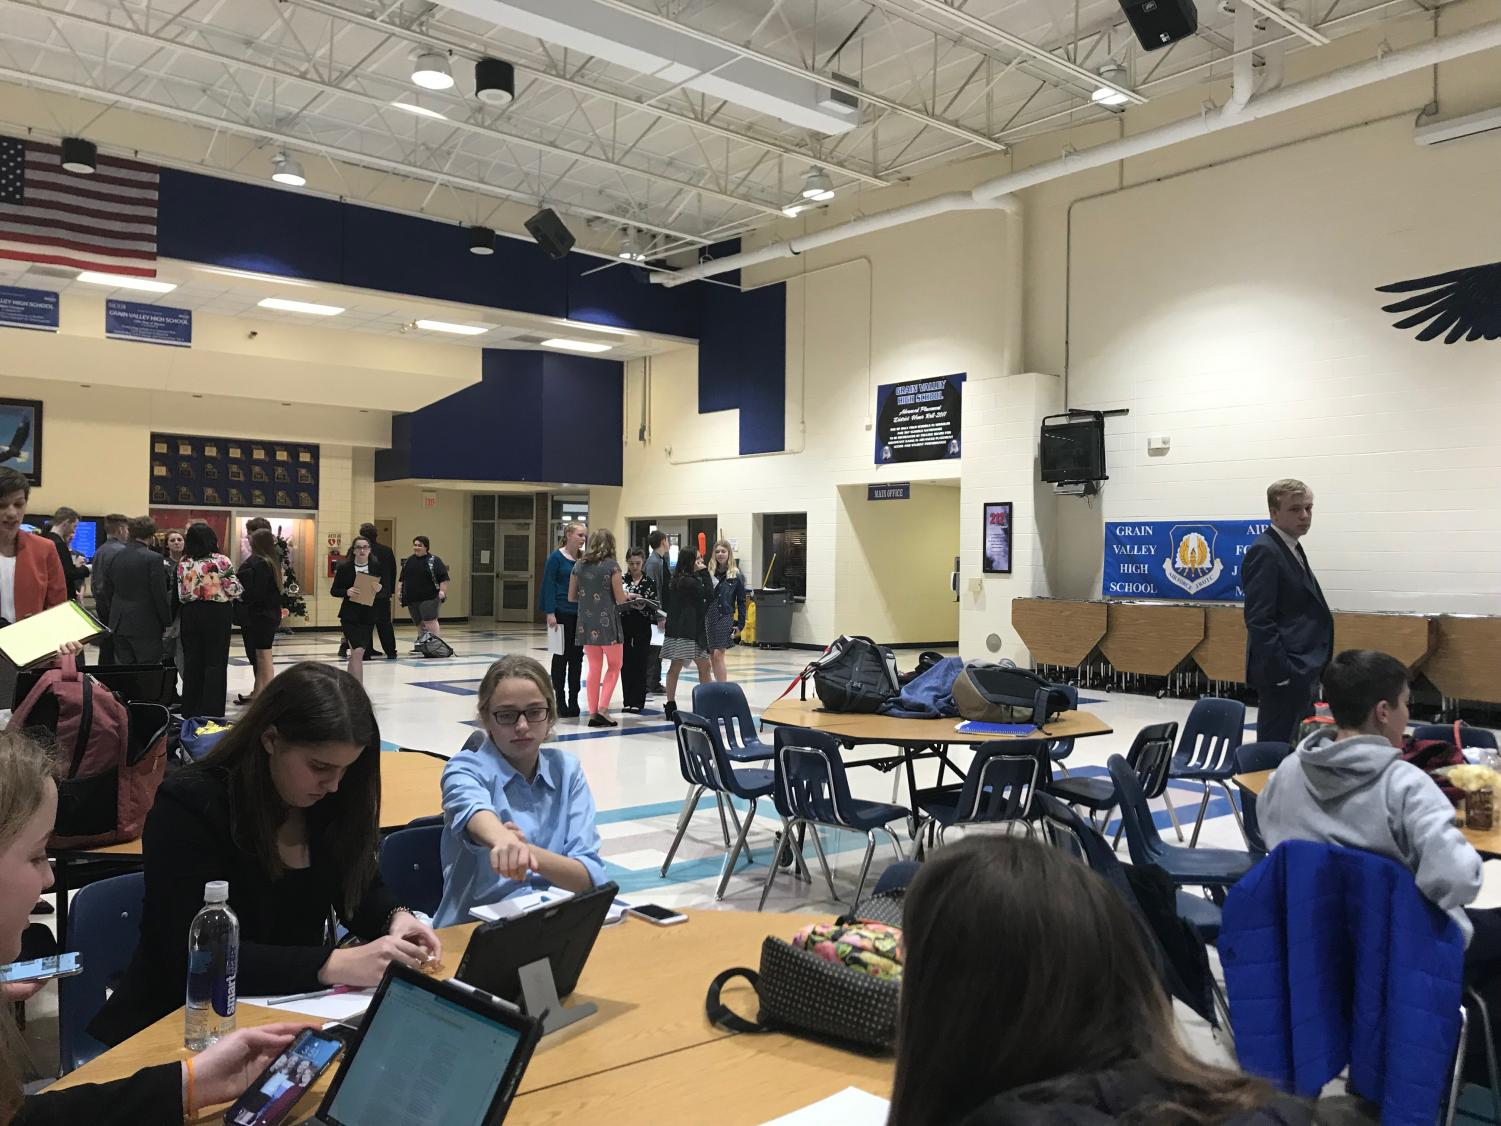 Students attend the December debate at Grain Valley High School Dec. 12. Students were dismissed during ninth period, returning home close to 8 p.m. photo courtsey of Anna Albritton